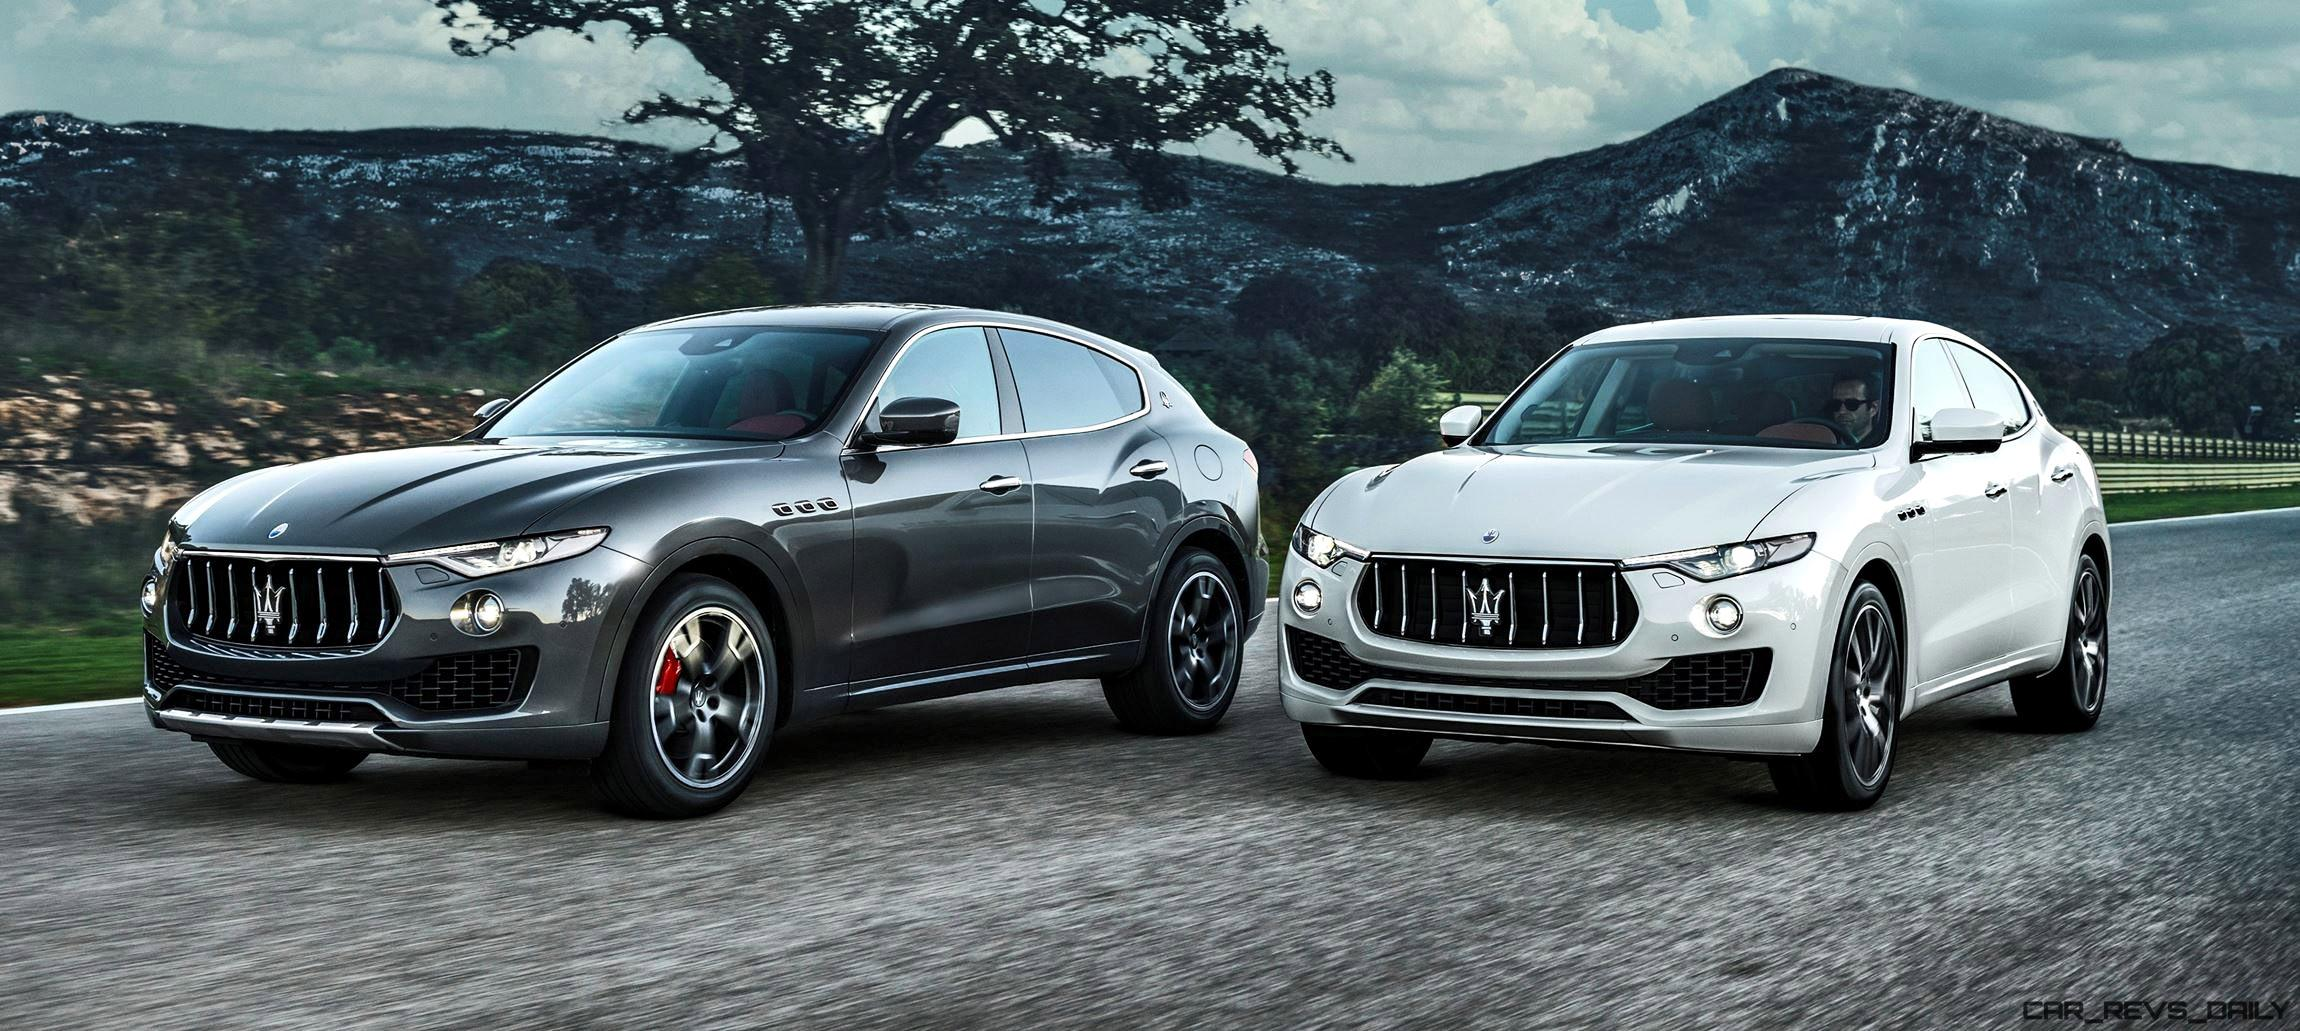 430hp 2017 maserati levante s full specs pricing. Black Bedroom Furniture Sets. Home Design Ideas